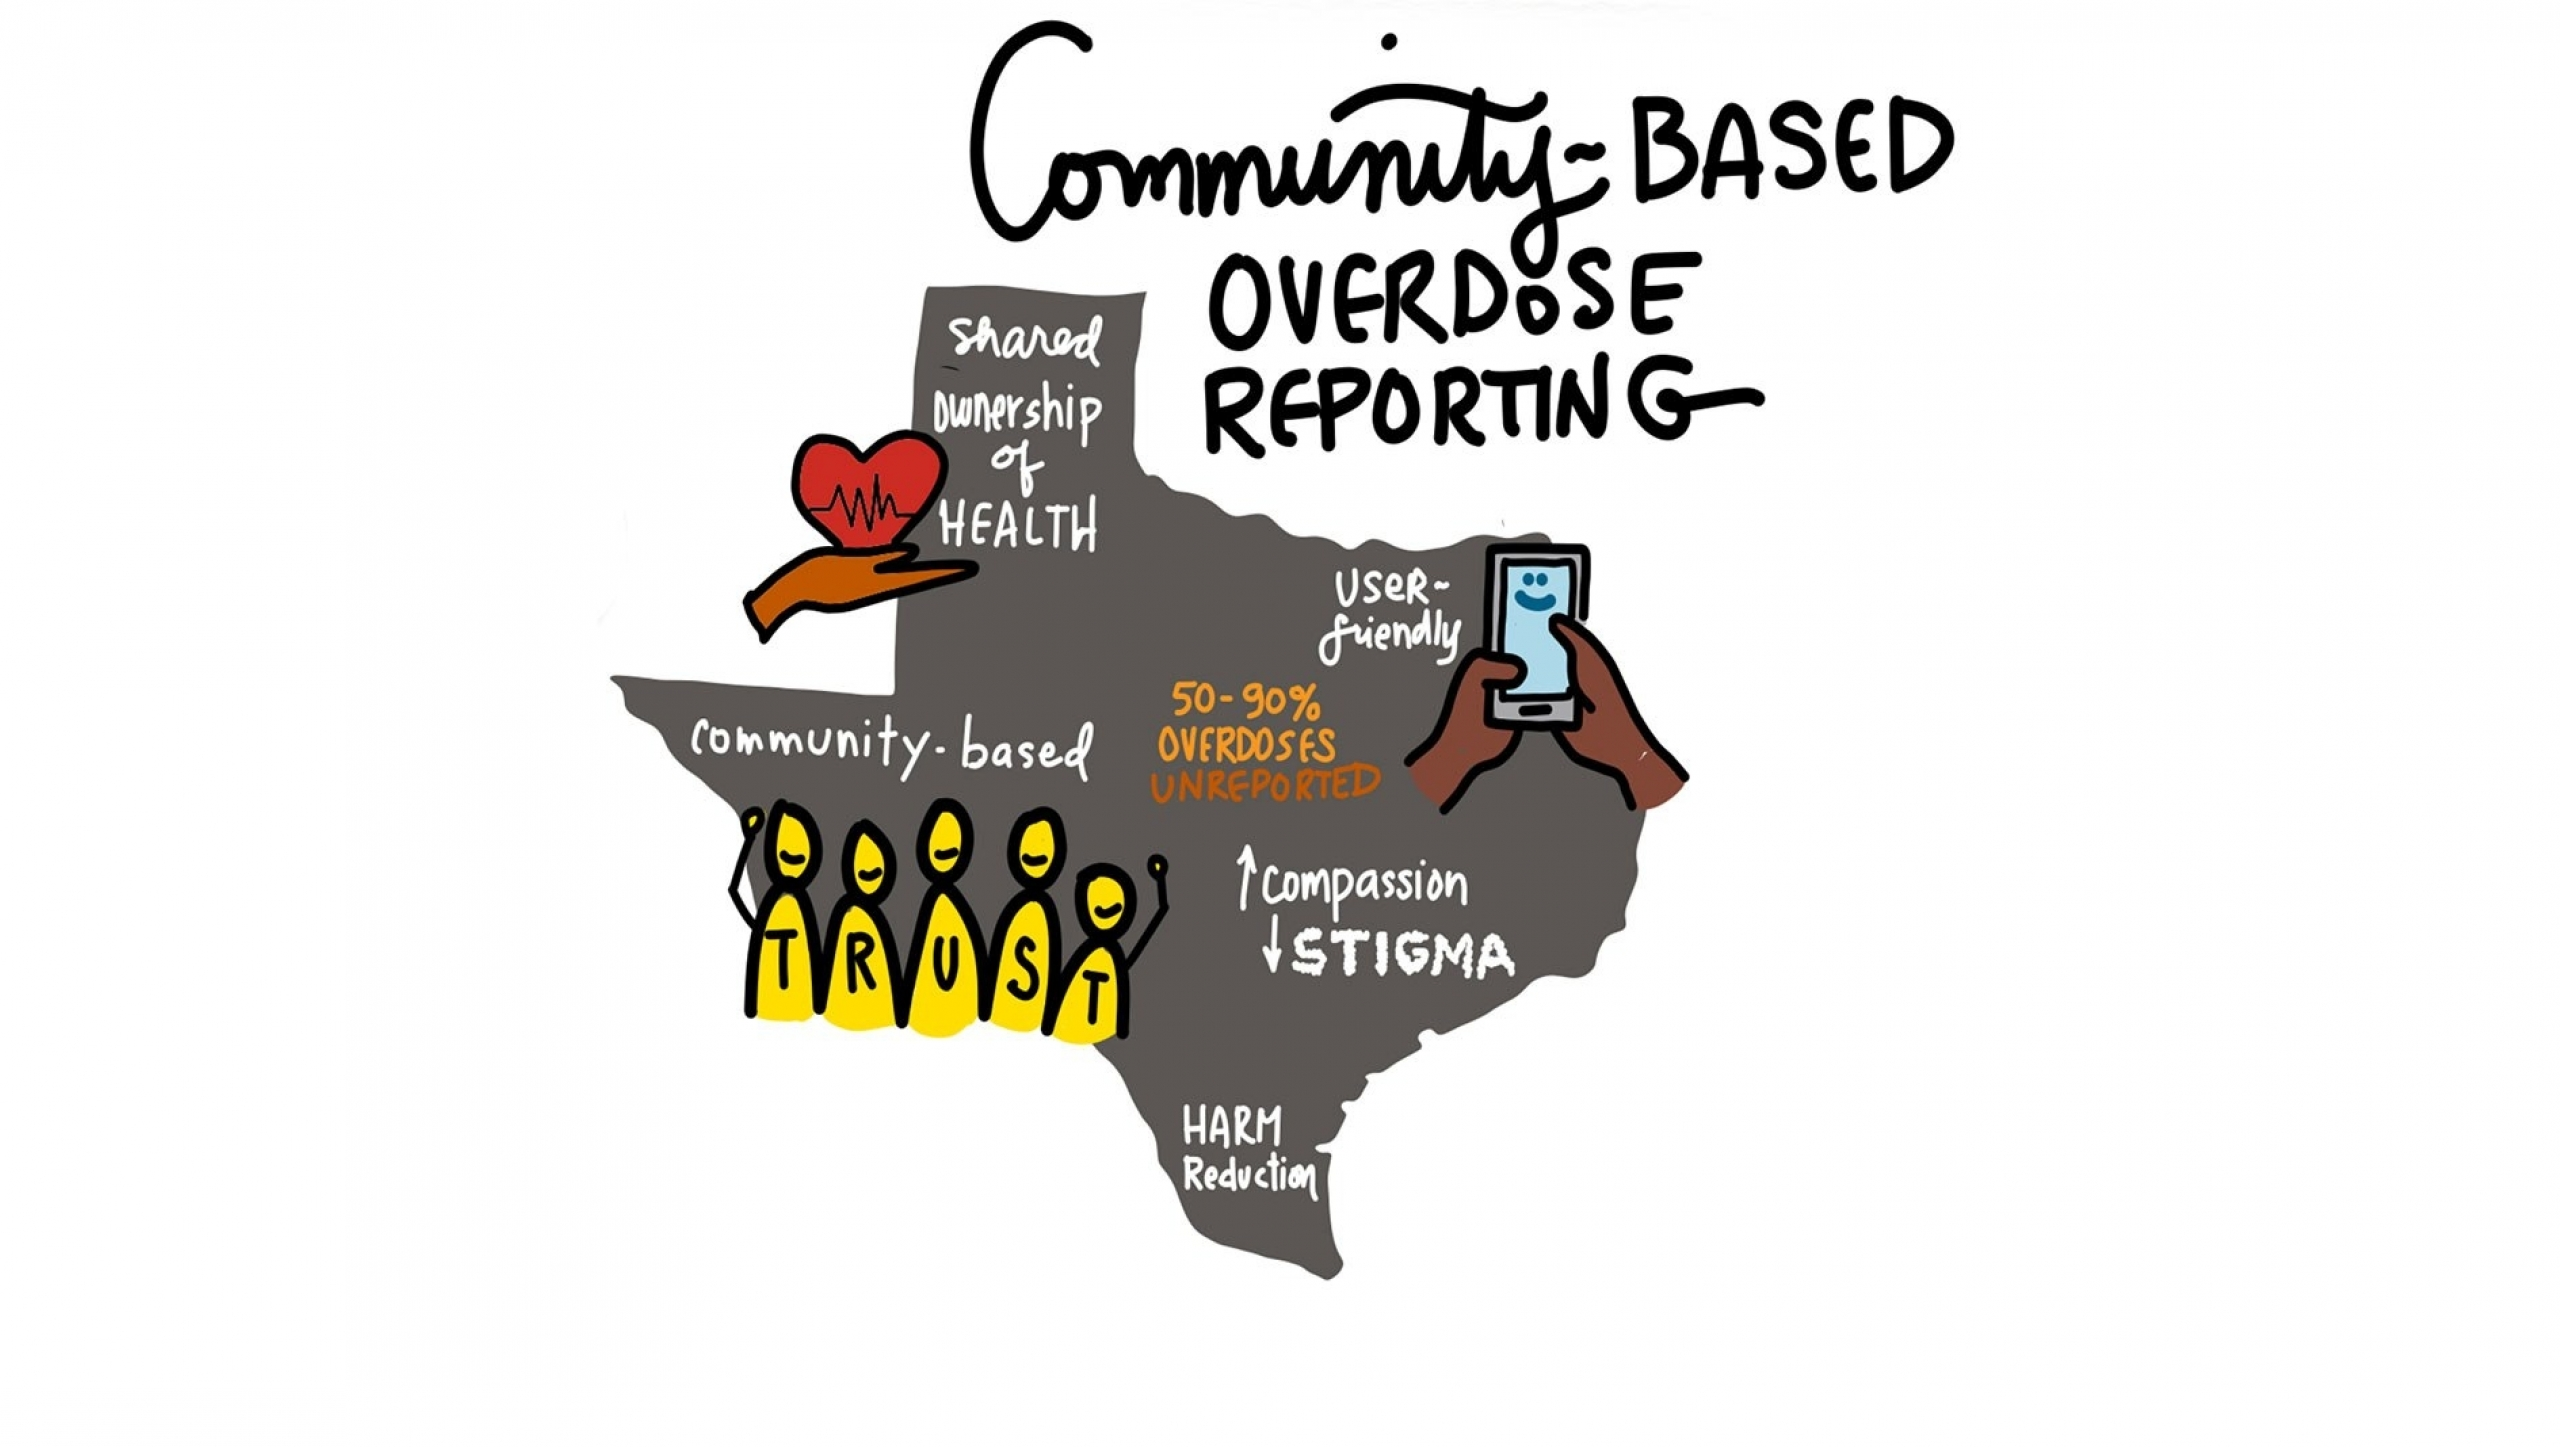 Illustration of community-based overdose reporting related to Dell Medical School's Healthscape.